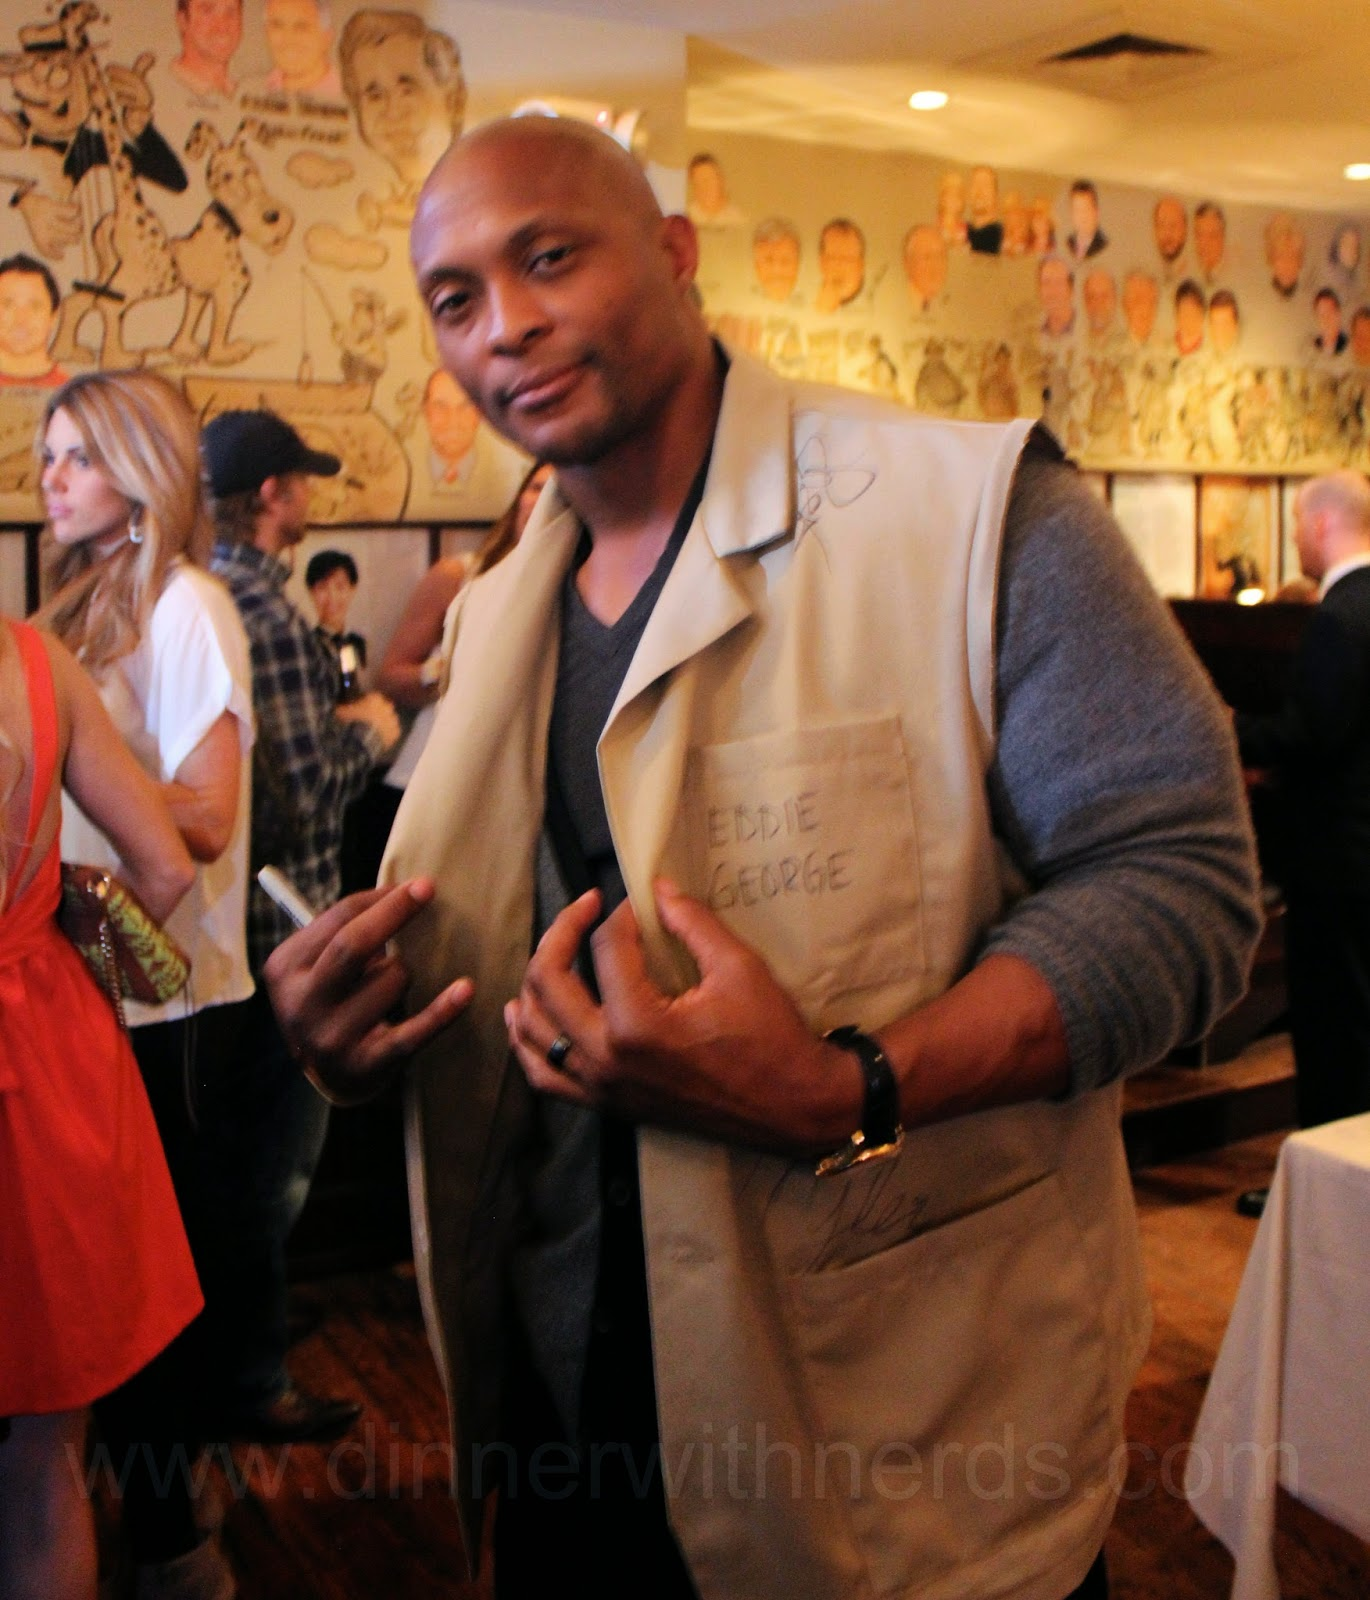 Eddie George waiting for wishes